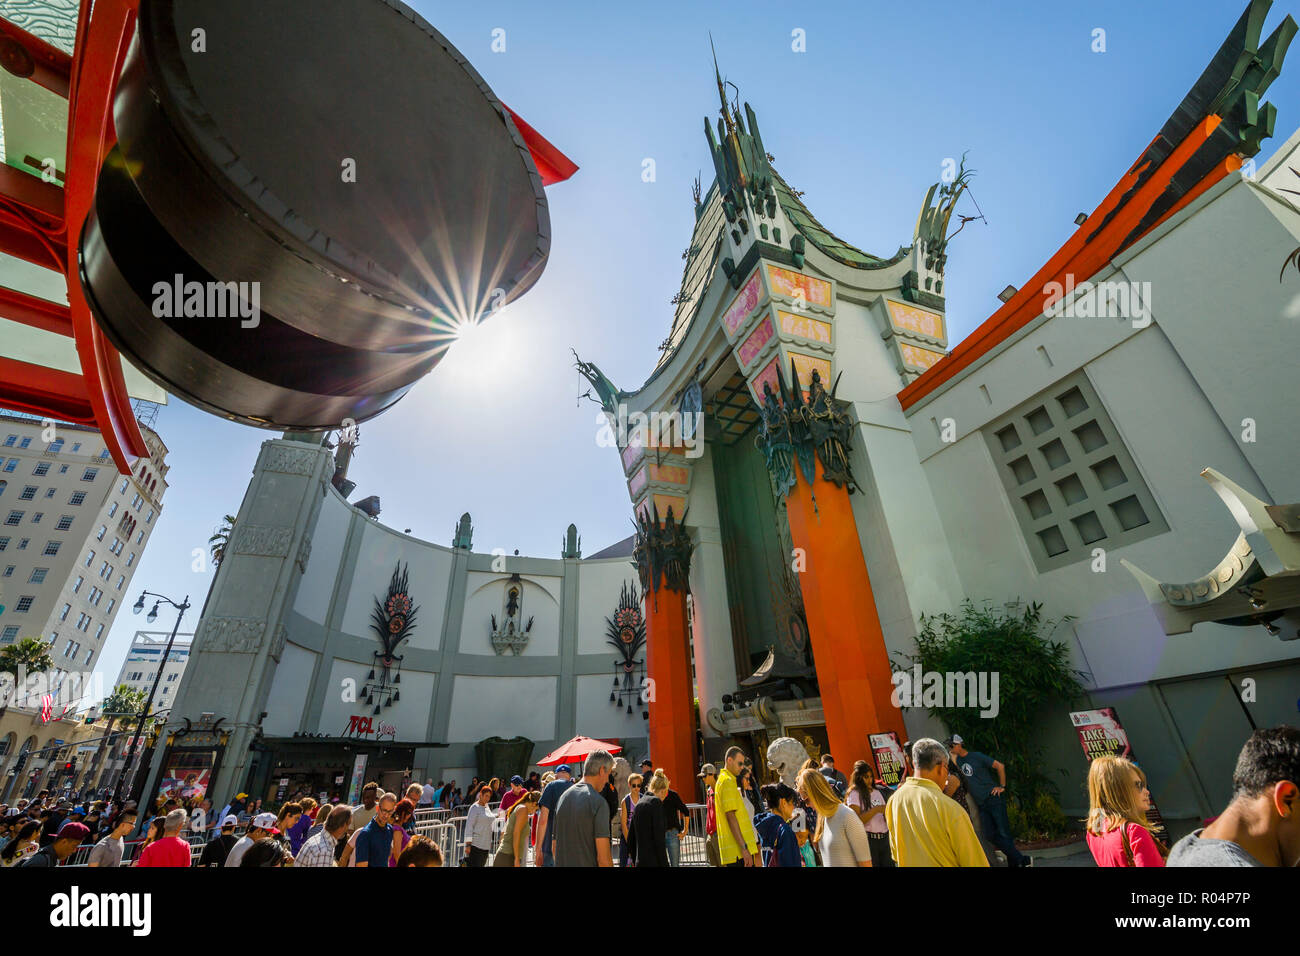 View of Grauman's Chinese Theatre on Hollywood Boulevard, Hollywood, Los Angeles, California, United States of America, North America - Stock Image